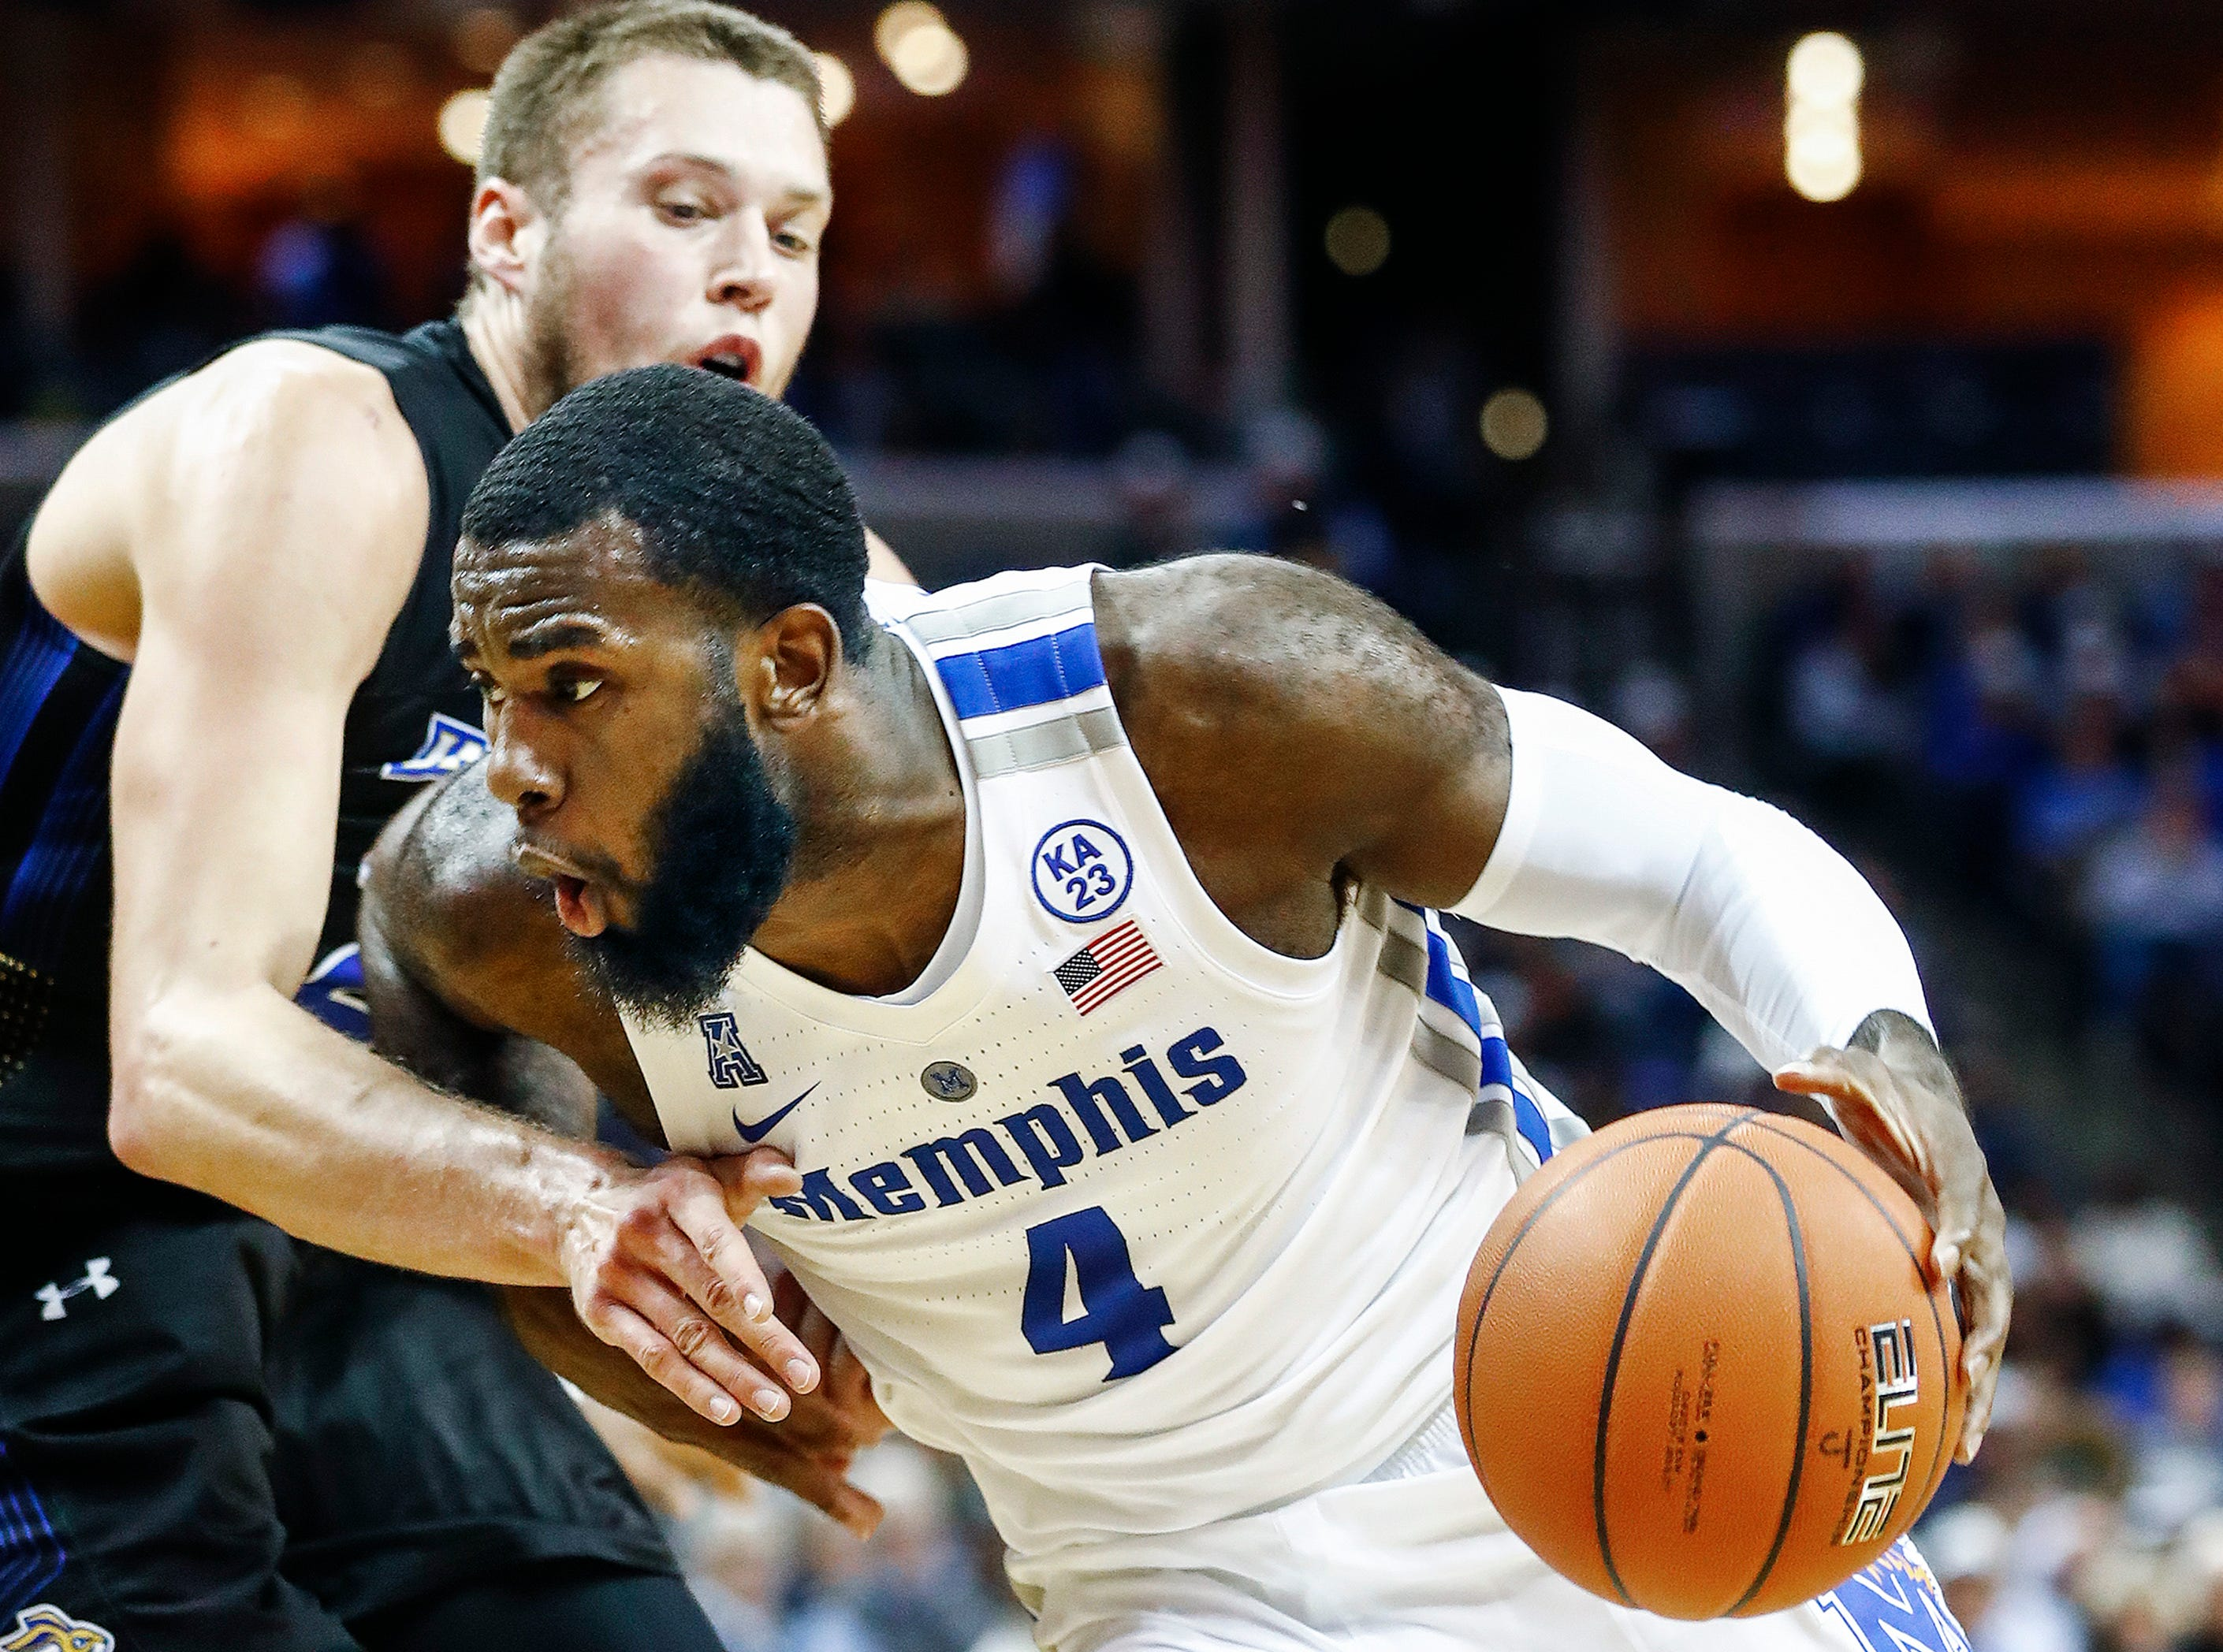 Memphis forward Raynere Thornton (right) drives the lane against South Dakota State defender Mike Daum (left) during action at the FedExFourm., Tuesday, December 4, 2018.